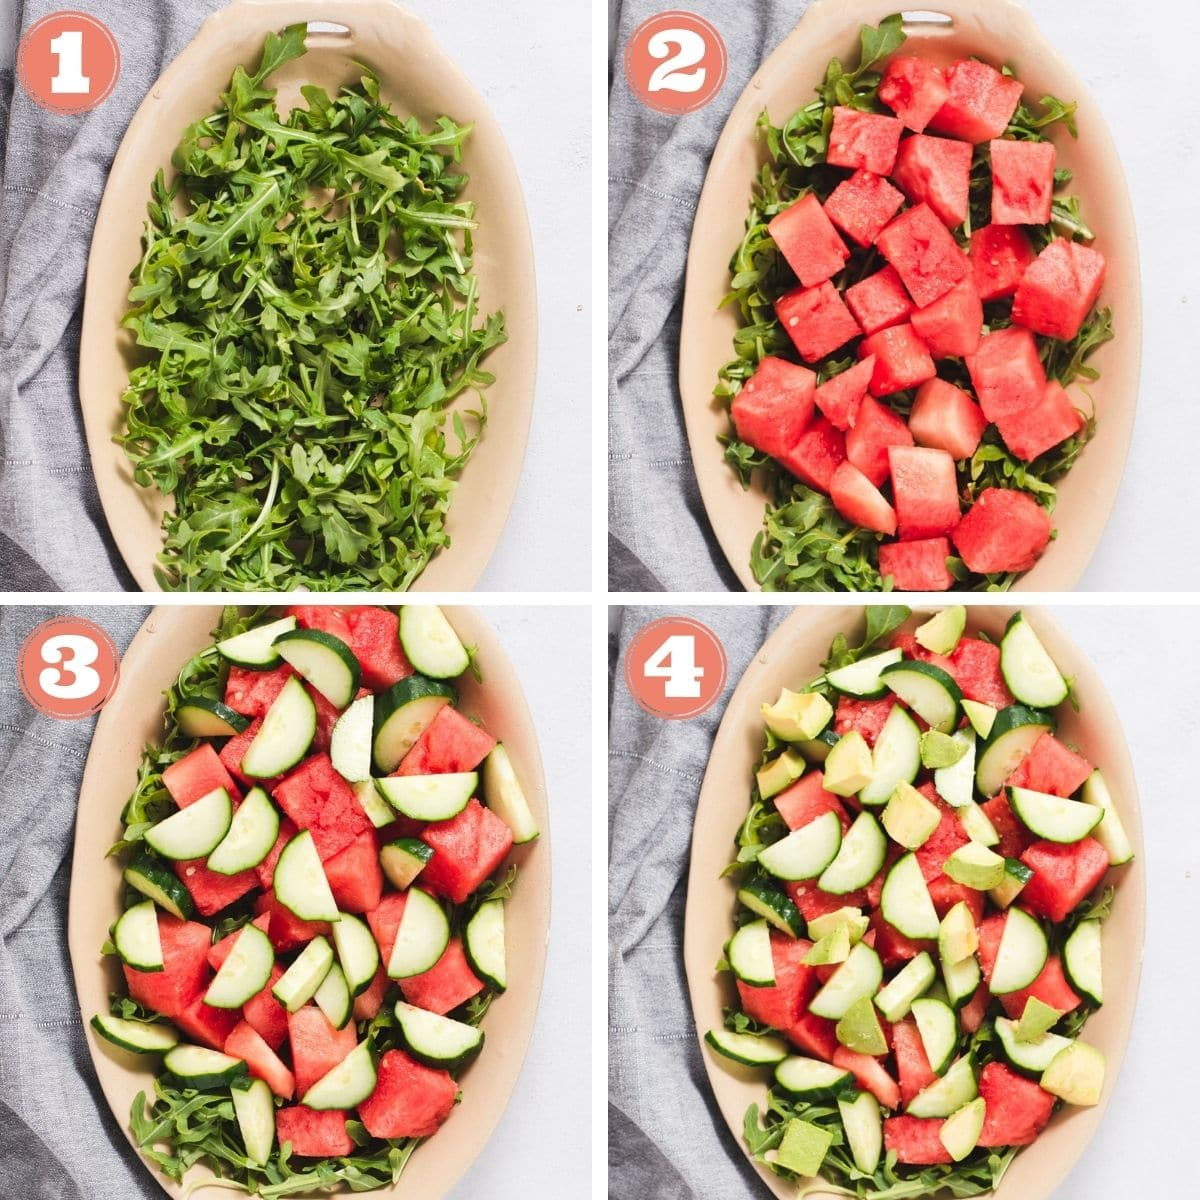 Steps 1 through 4 to layer watermelon cucumber salad